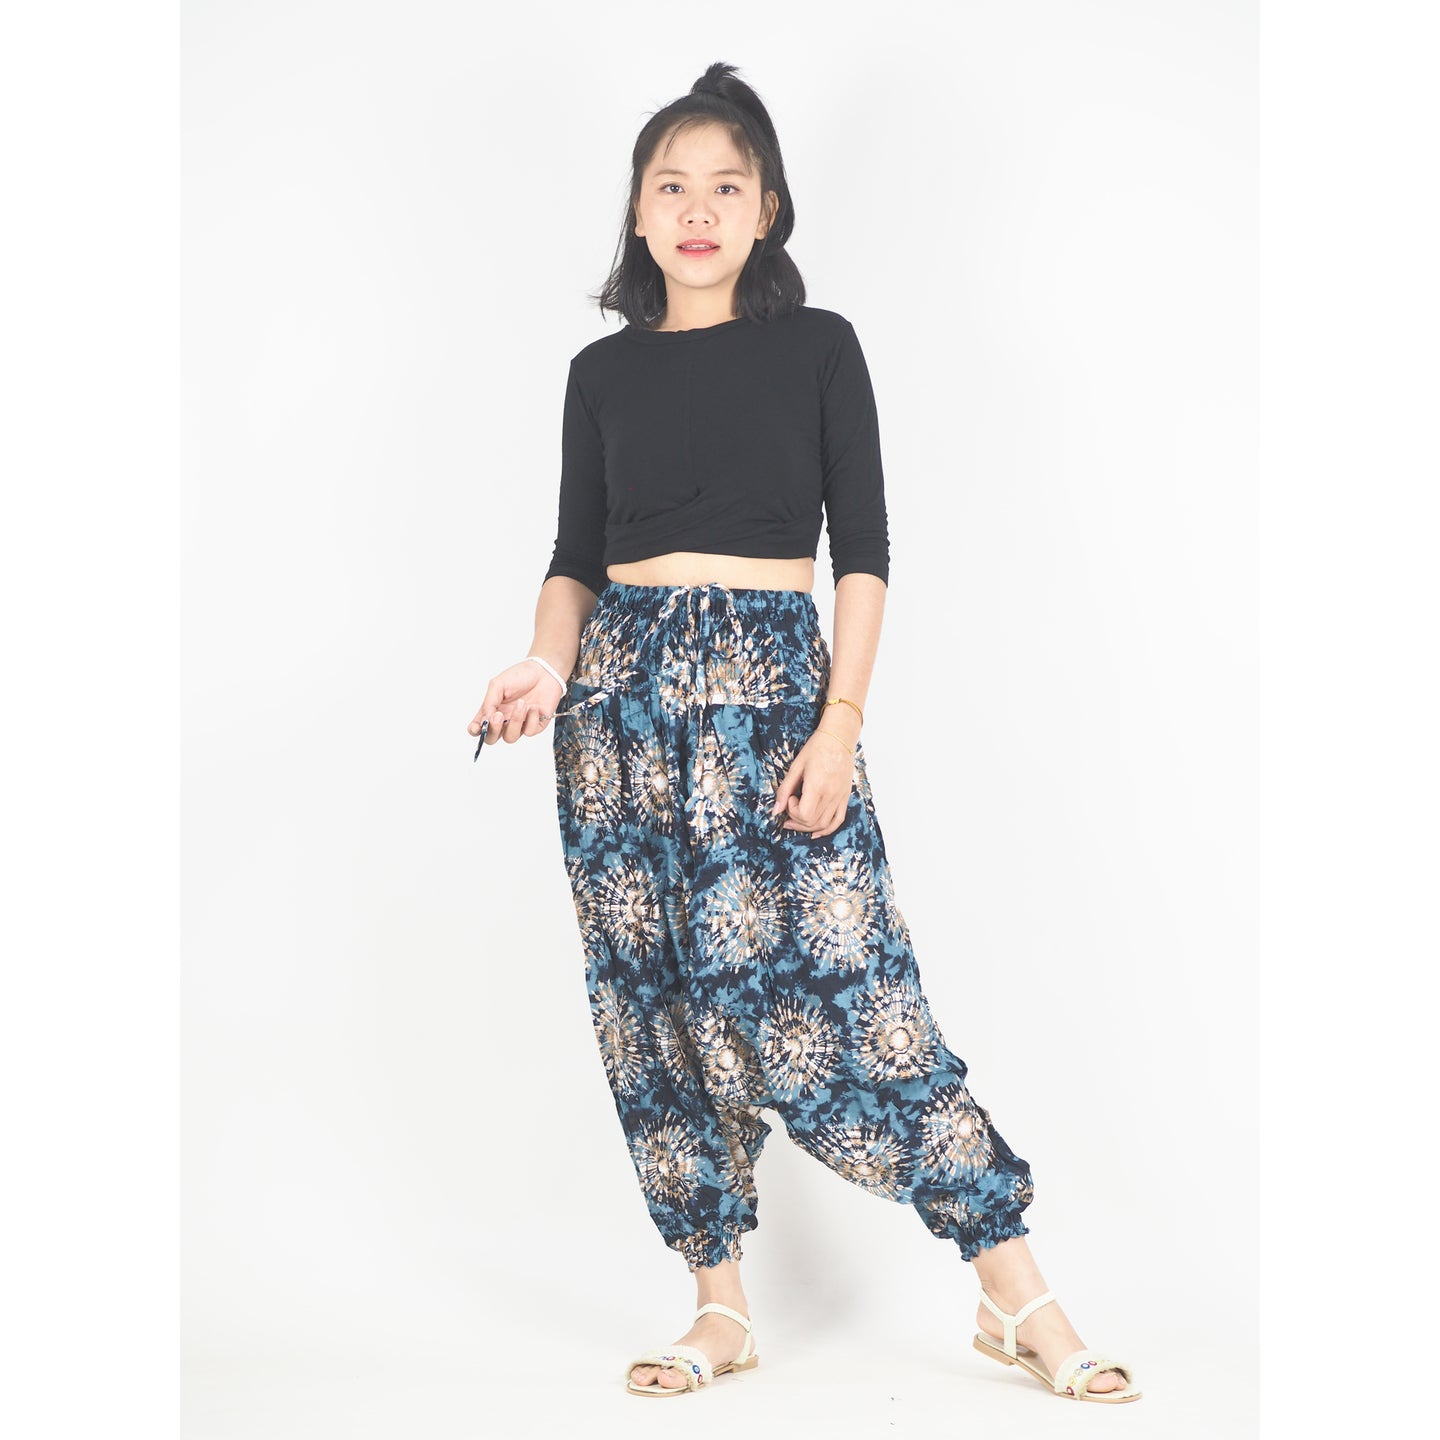 Tie Dye Unisex Aladdin Drop Crotch Pants in Black PP0056 020039 06